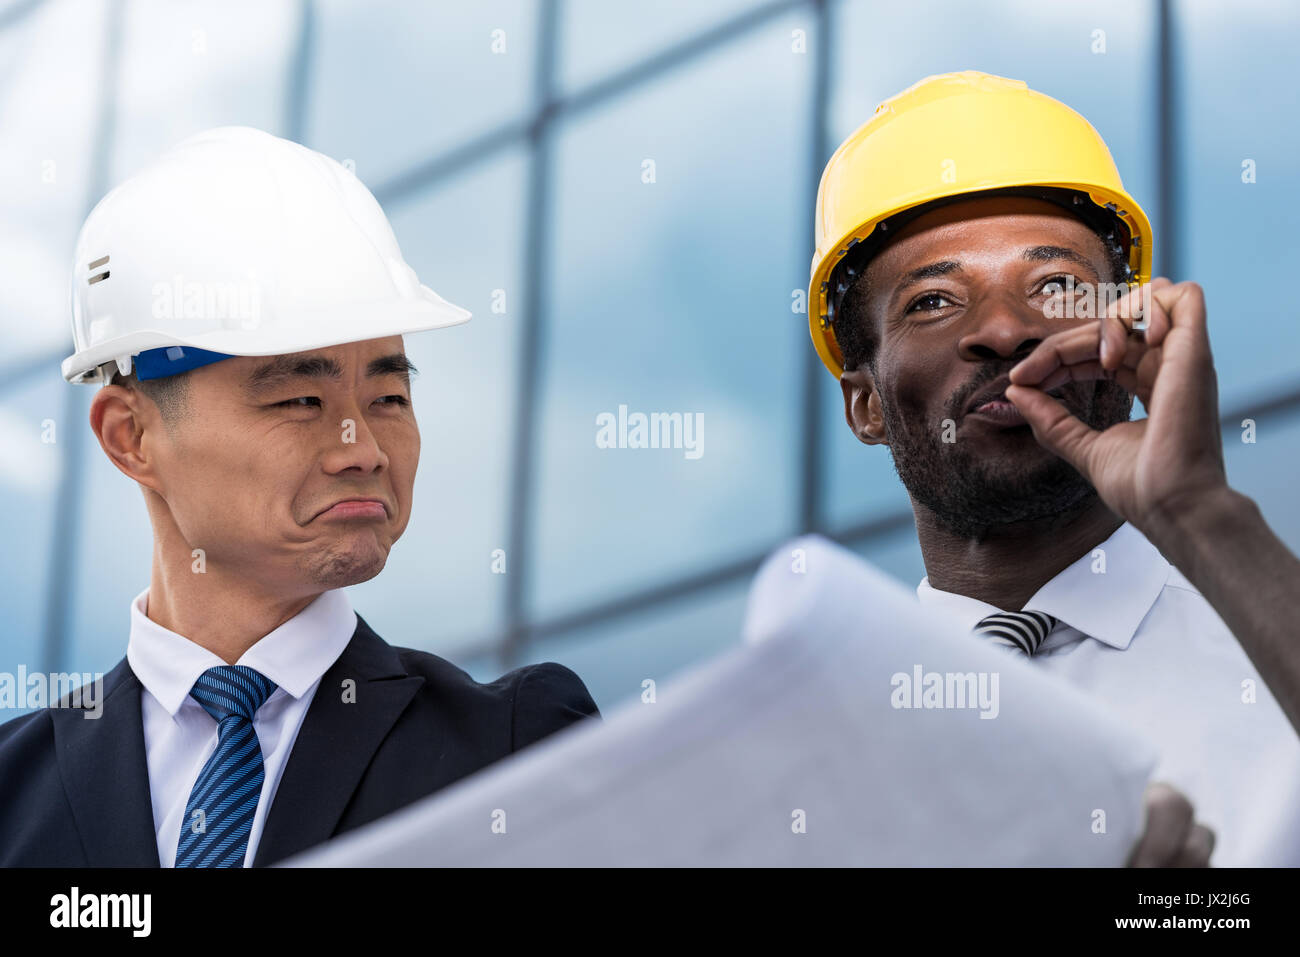 Close-up view of professional architects in hardhats working with blueprint - Stock Image